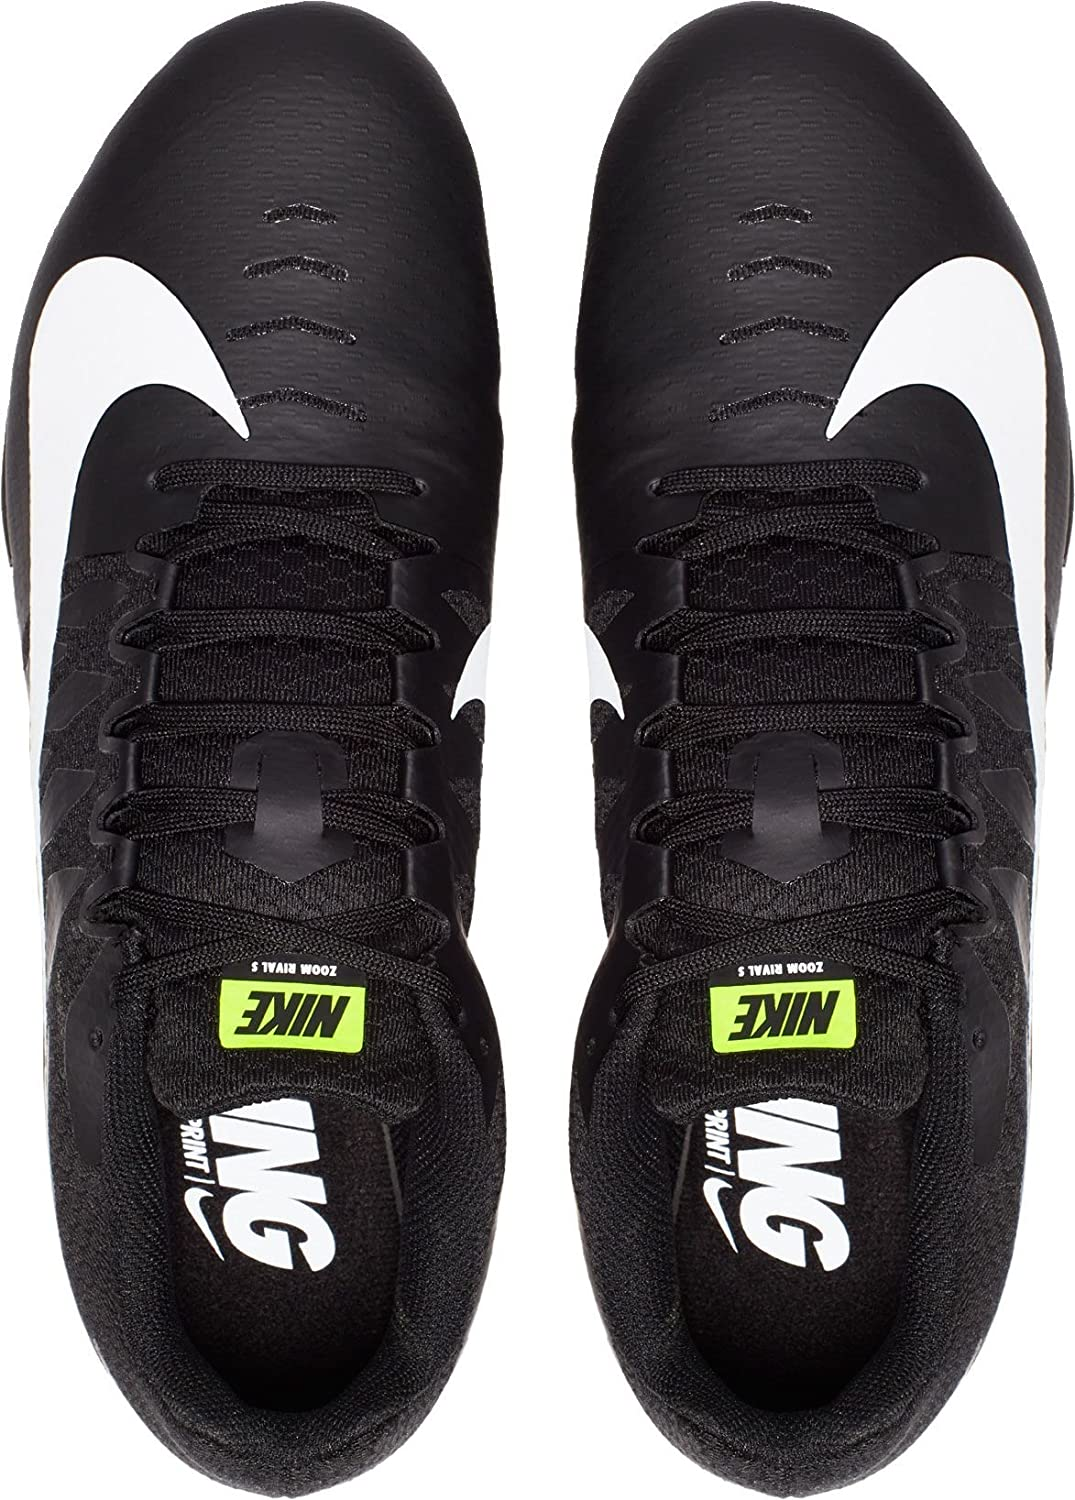 02bdcf94be0a Amazon.com | Nike Mens Zoom Rival S 9 Track and Field Shoes Black/White/2 D  | Track & Field & Cross Country